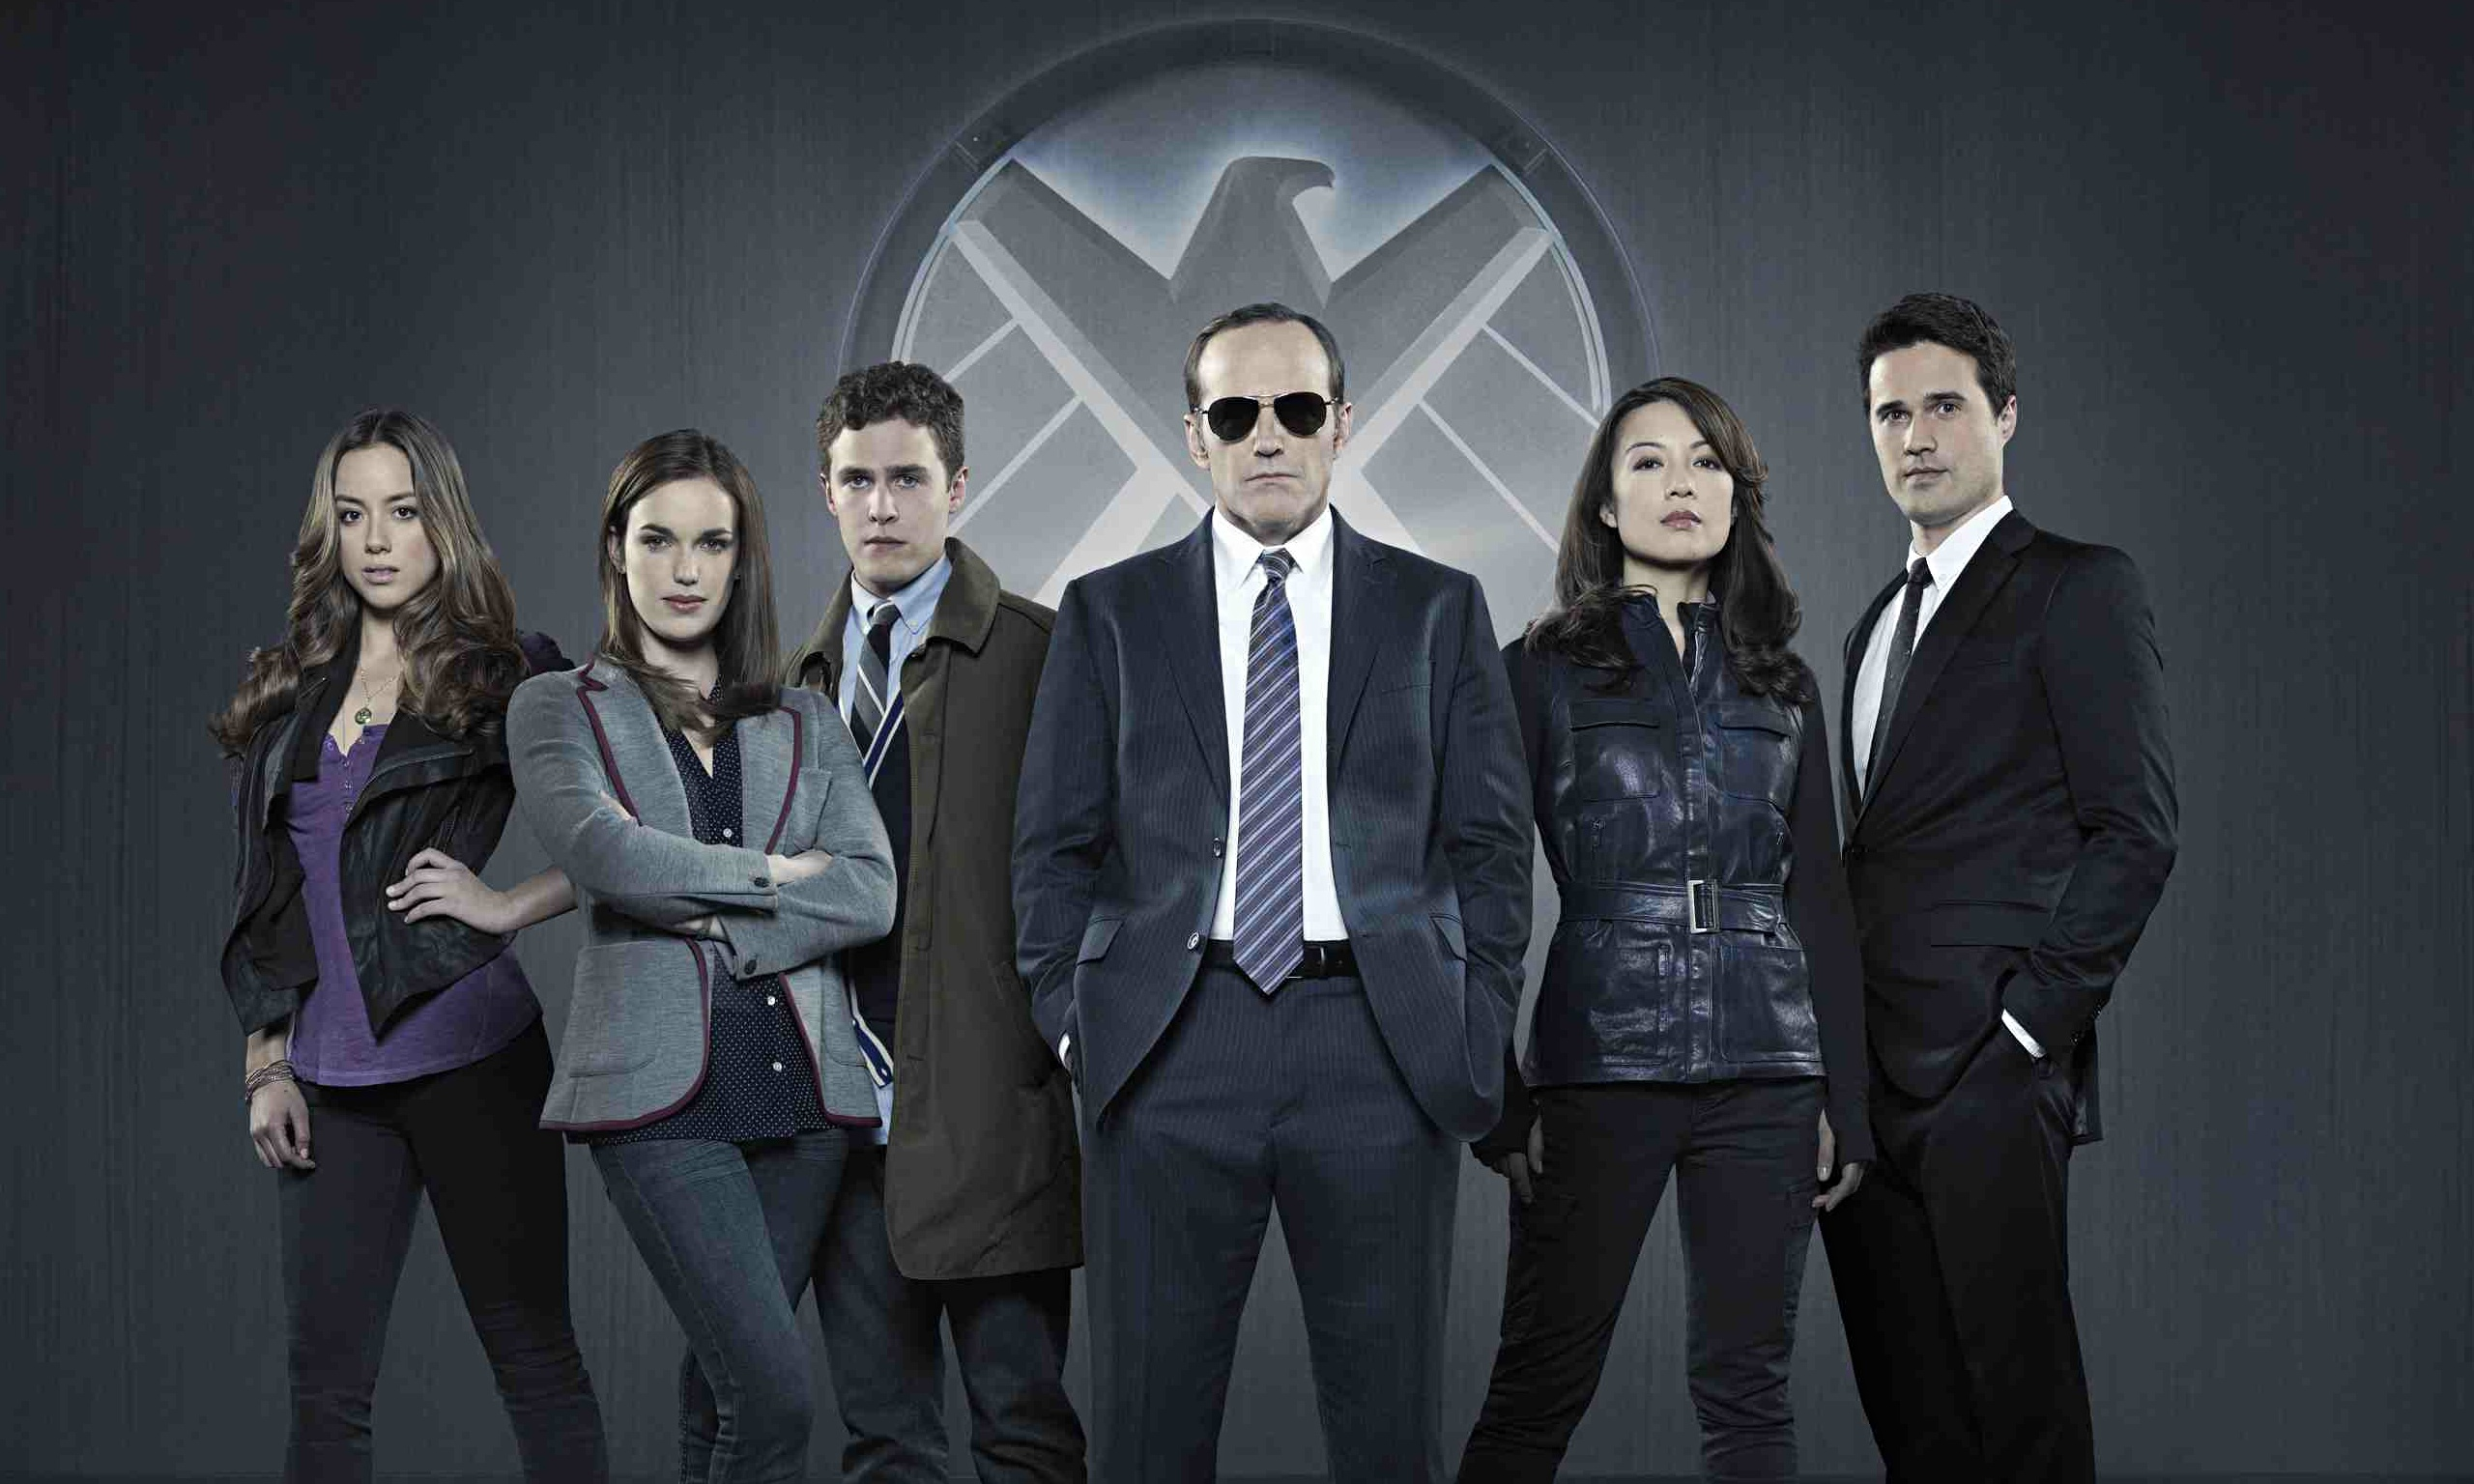 Coulsons Team